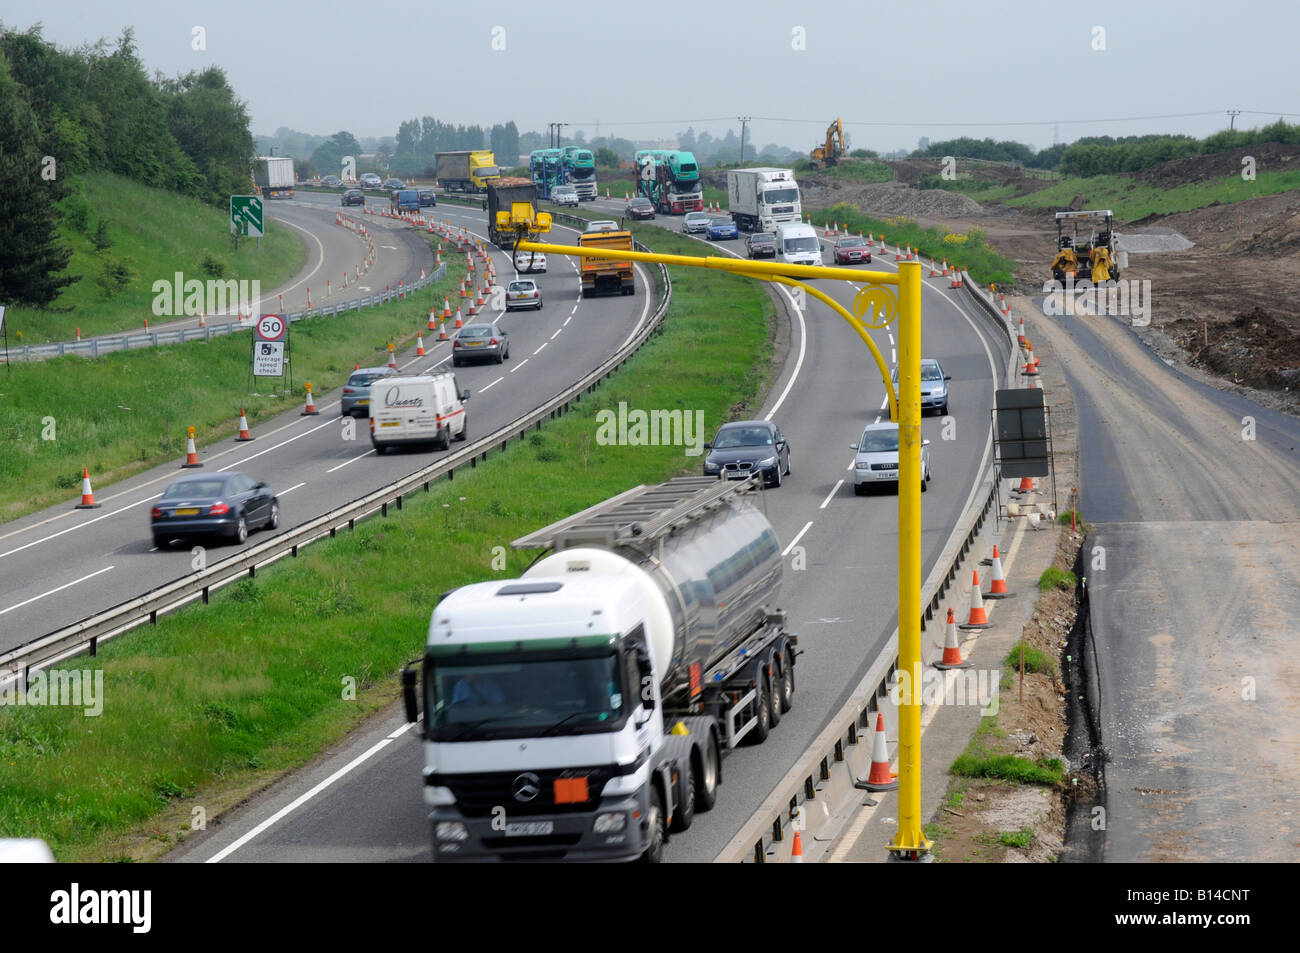 Average Speed Camera, A1 Road Upgrade, Wetherby, West Yorkshire - Stock Image